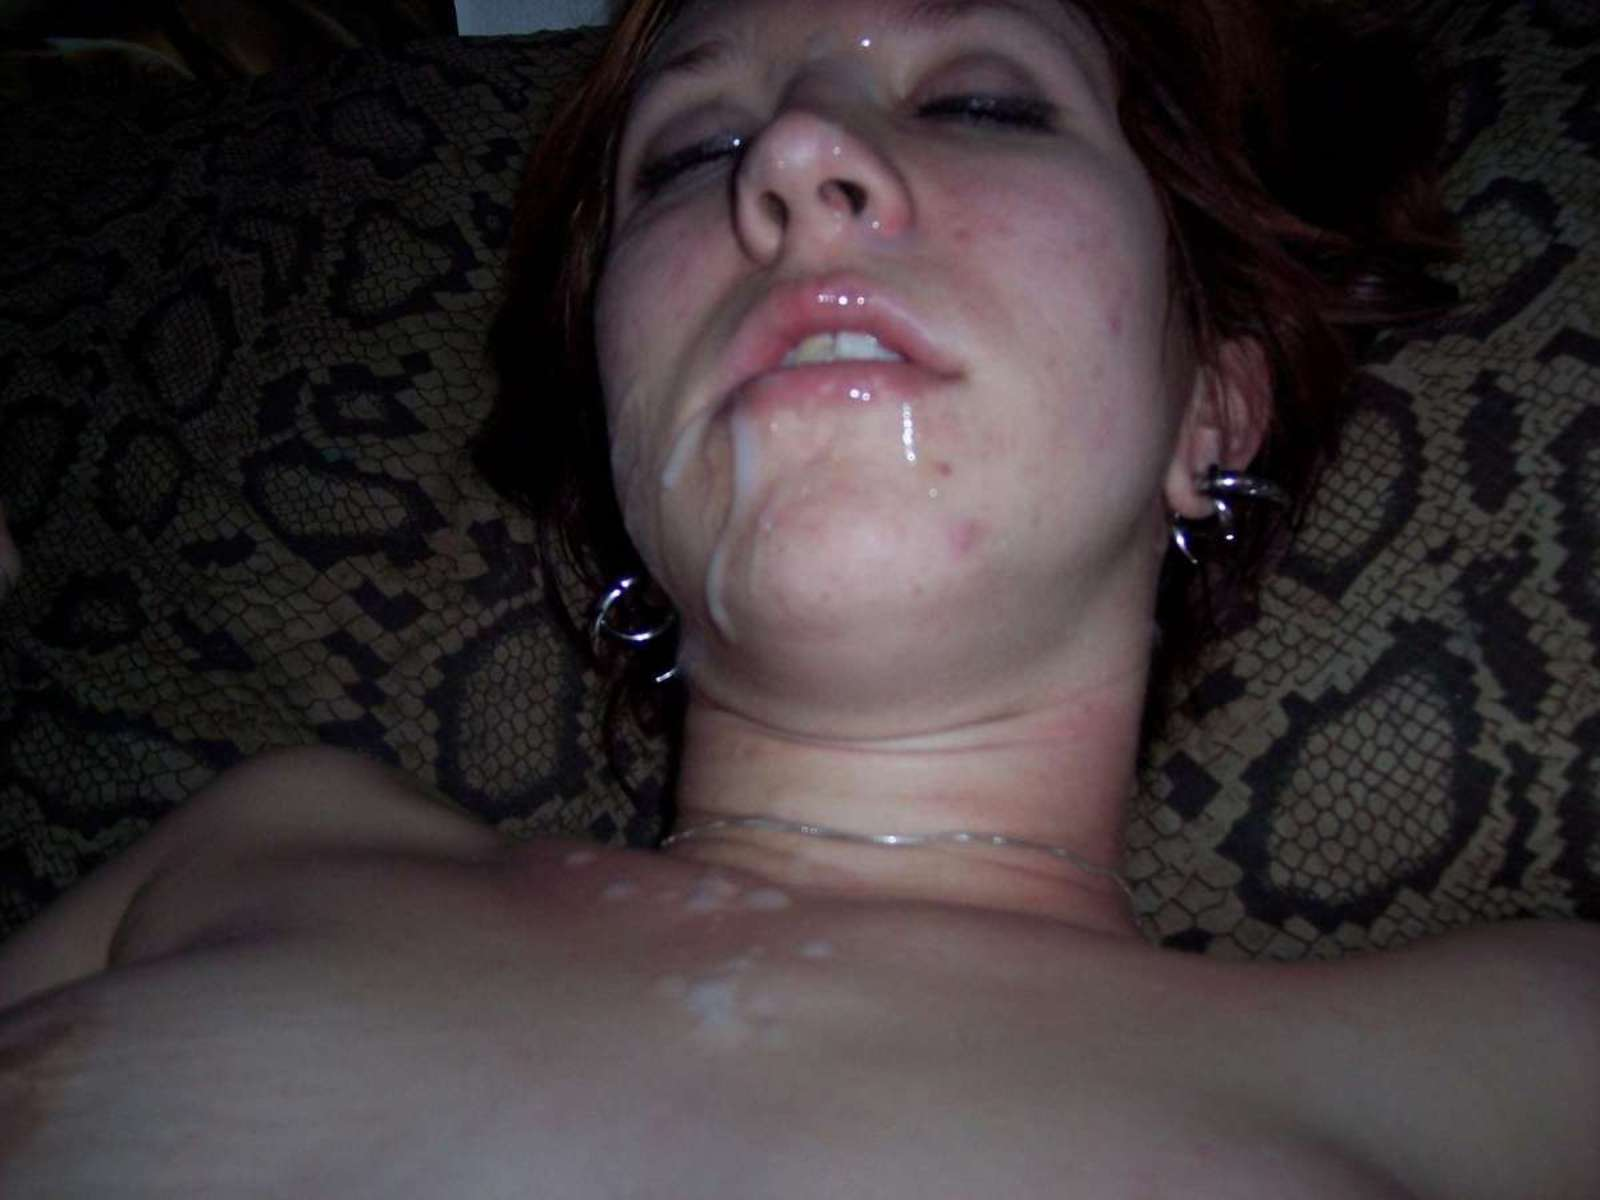 Redhead tied and tortured 1 of 3 - 2 part 2